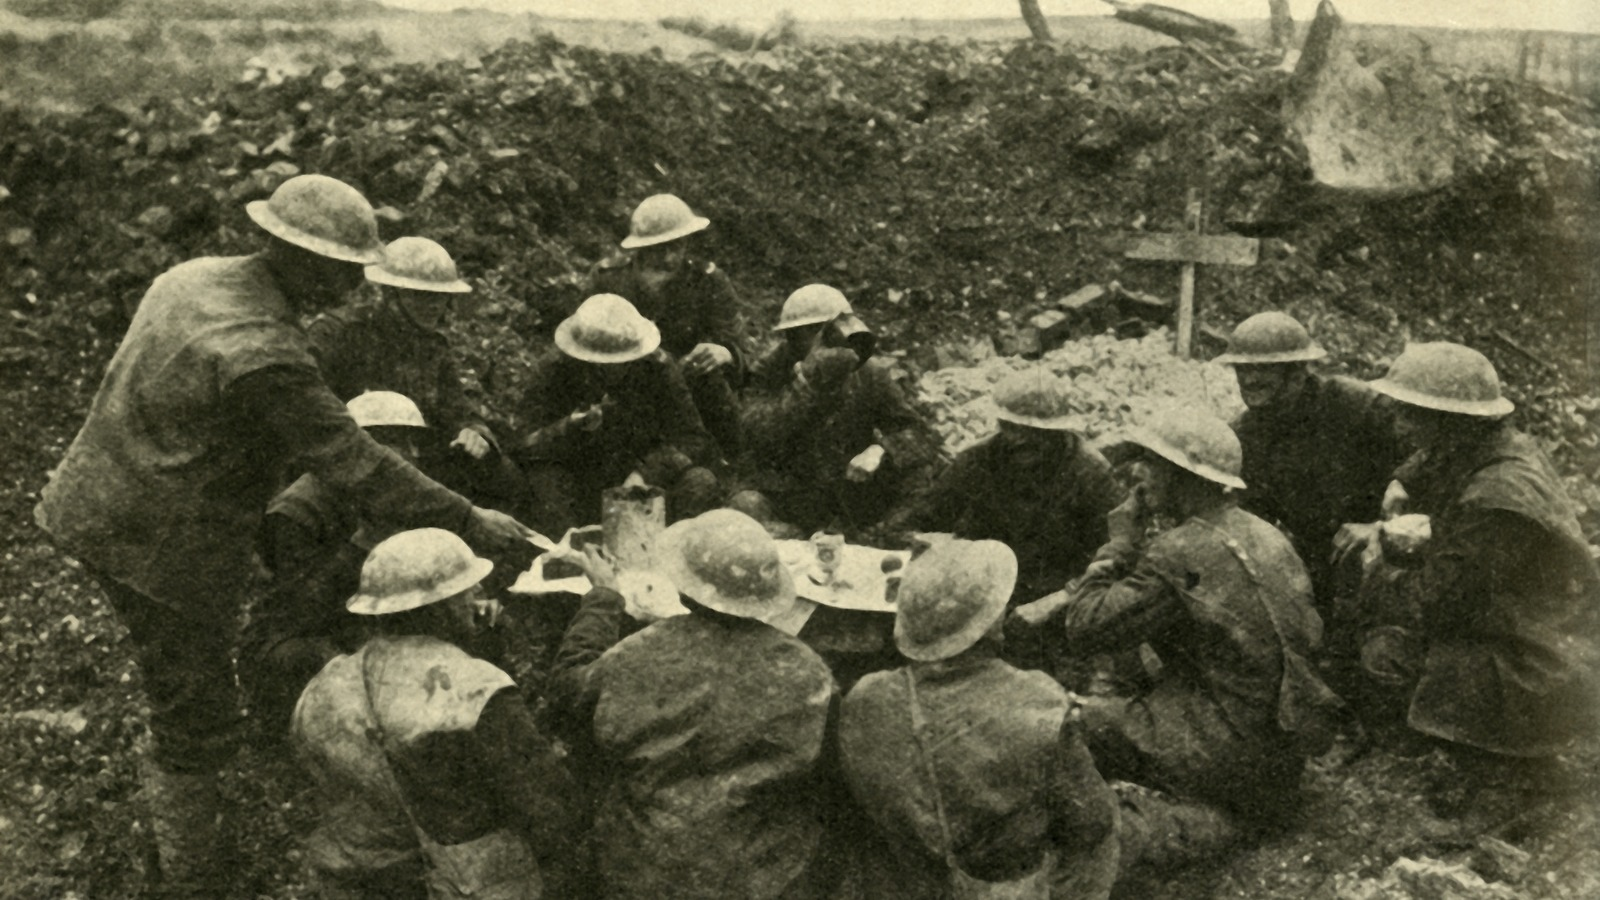 The 1914 Christmas truce's true story